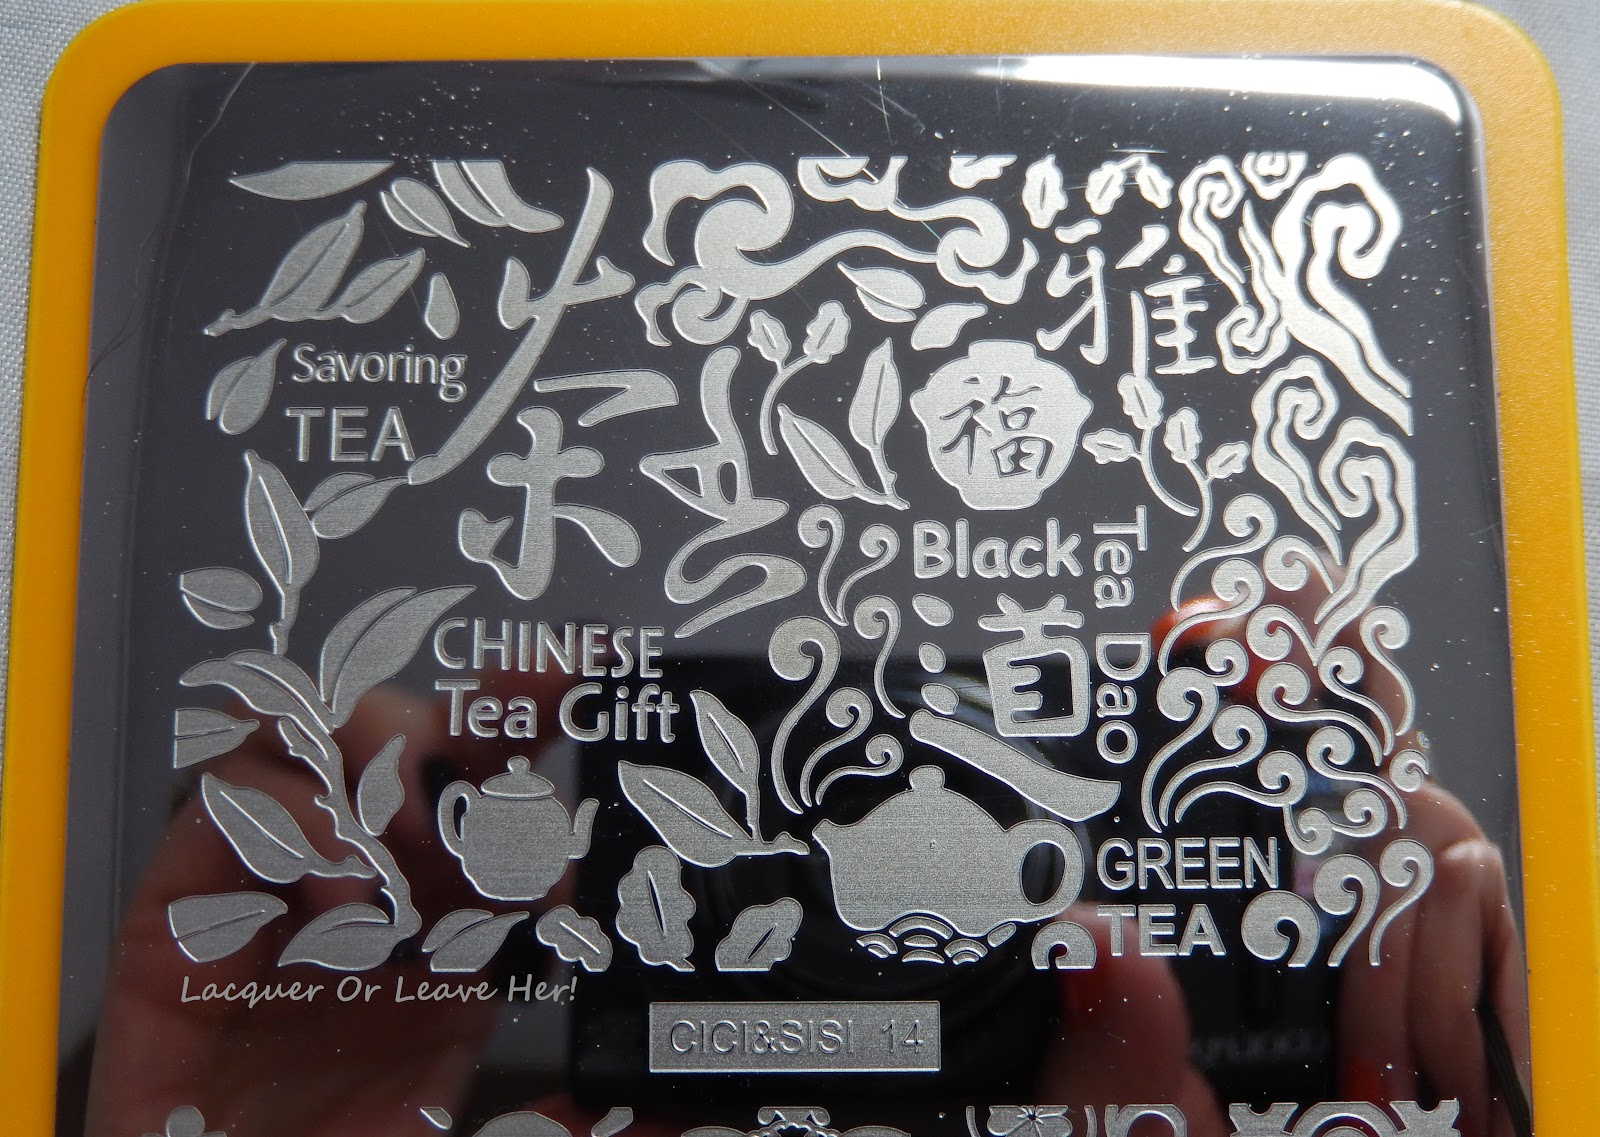 Top half of Cici&Sisi 14: A collage of tea images